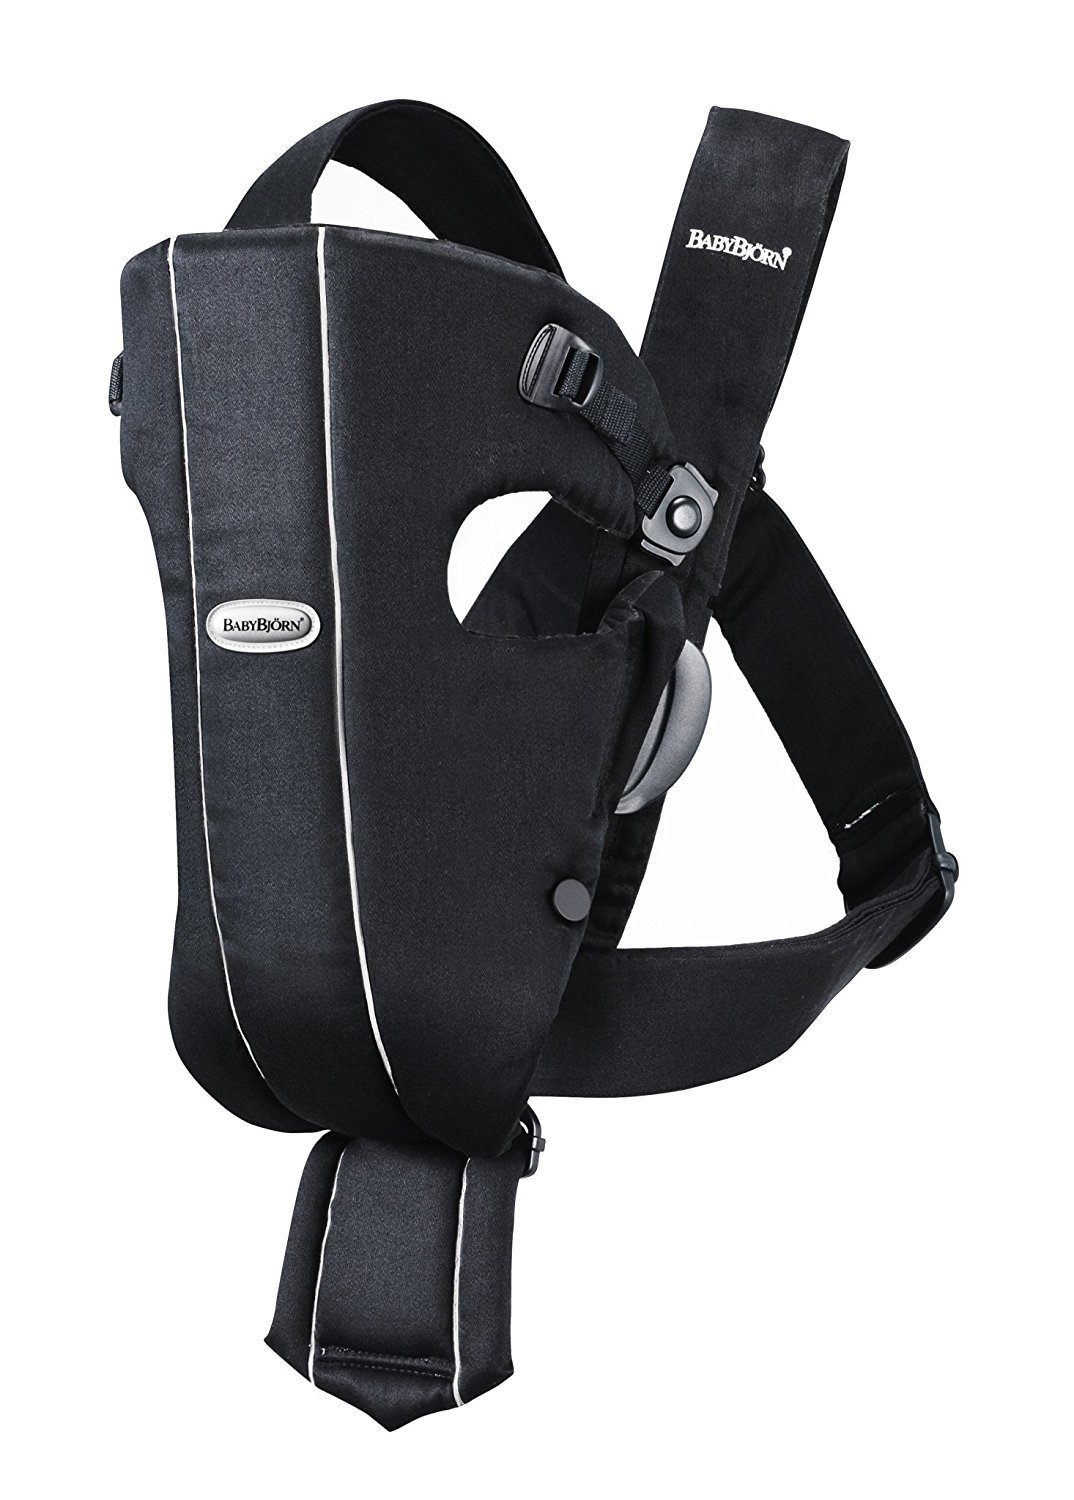 Cotton Black BABYBJORN Baby Carrier Original